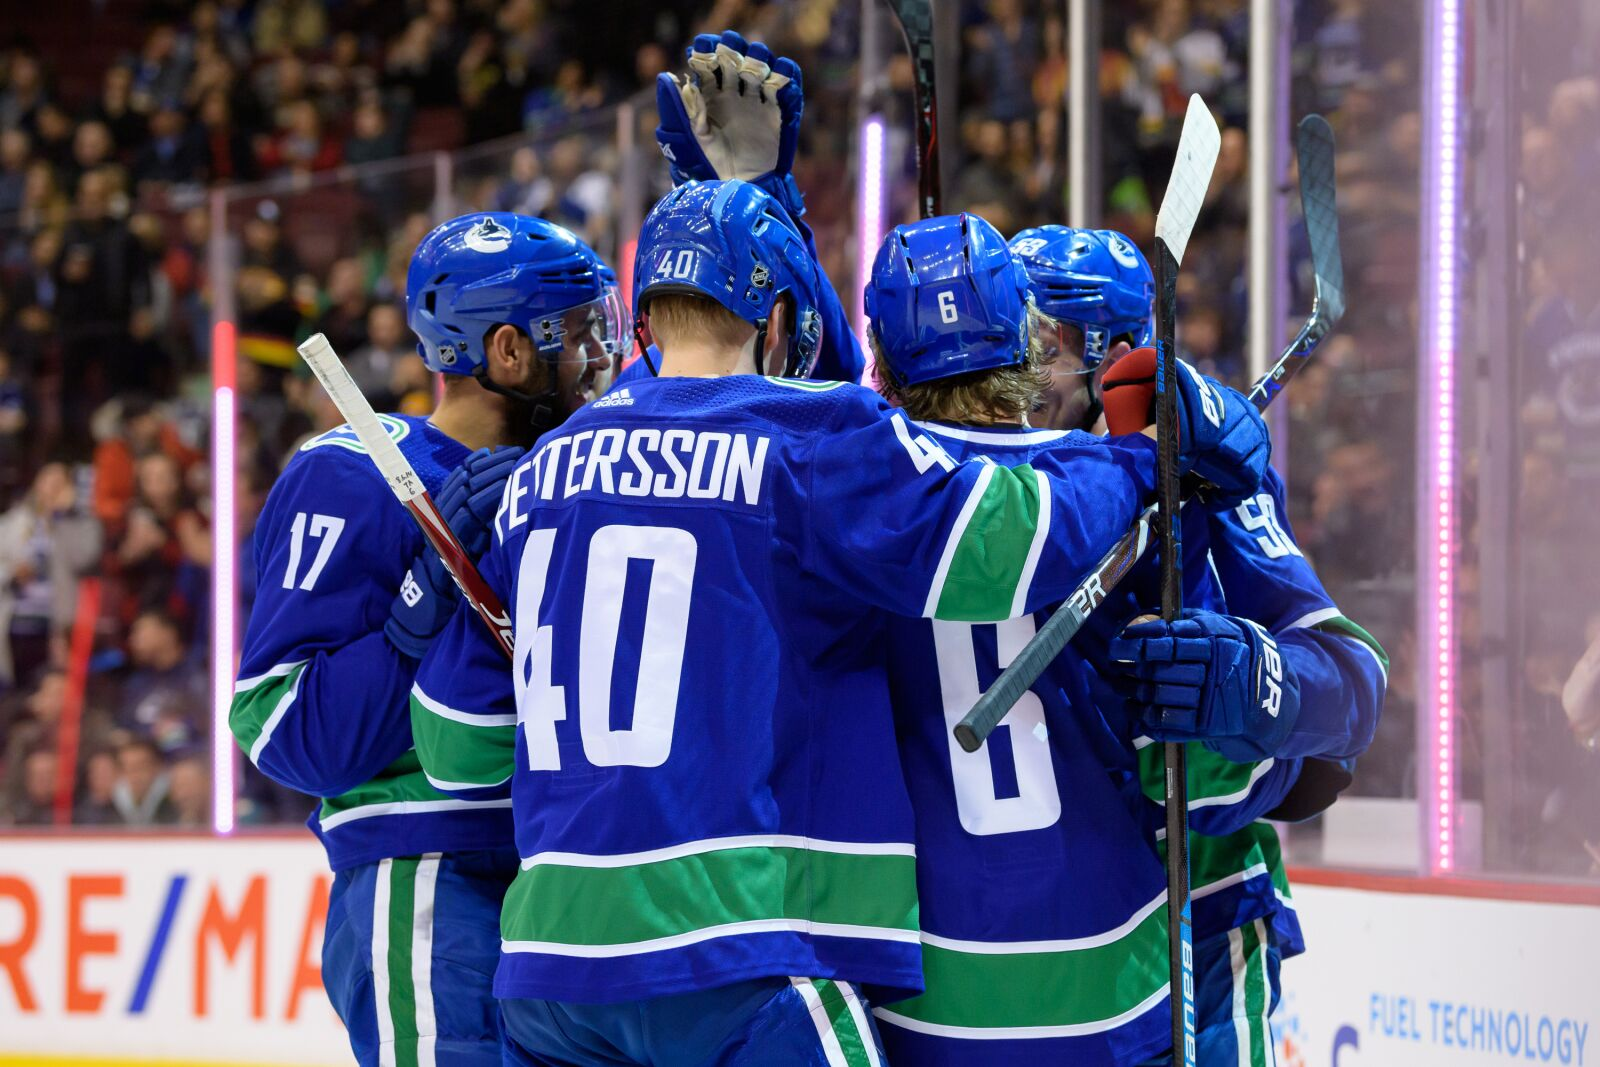 f1a5efecd Games to look forward to in the Vancouver Canucks 2019-20 schedule